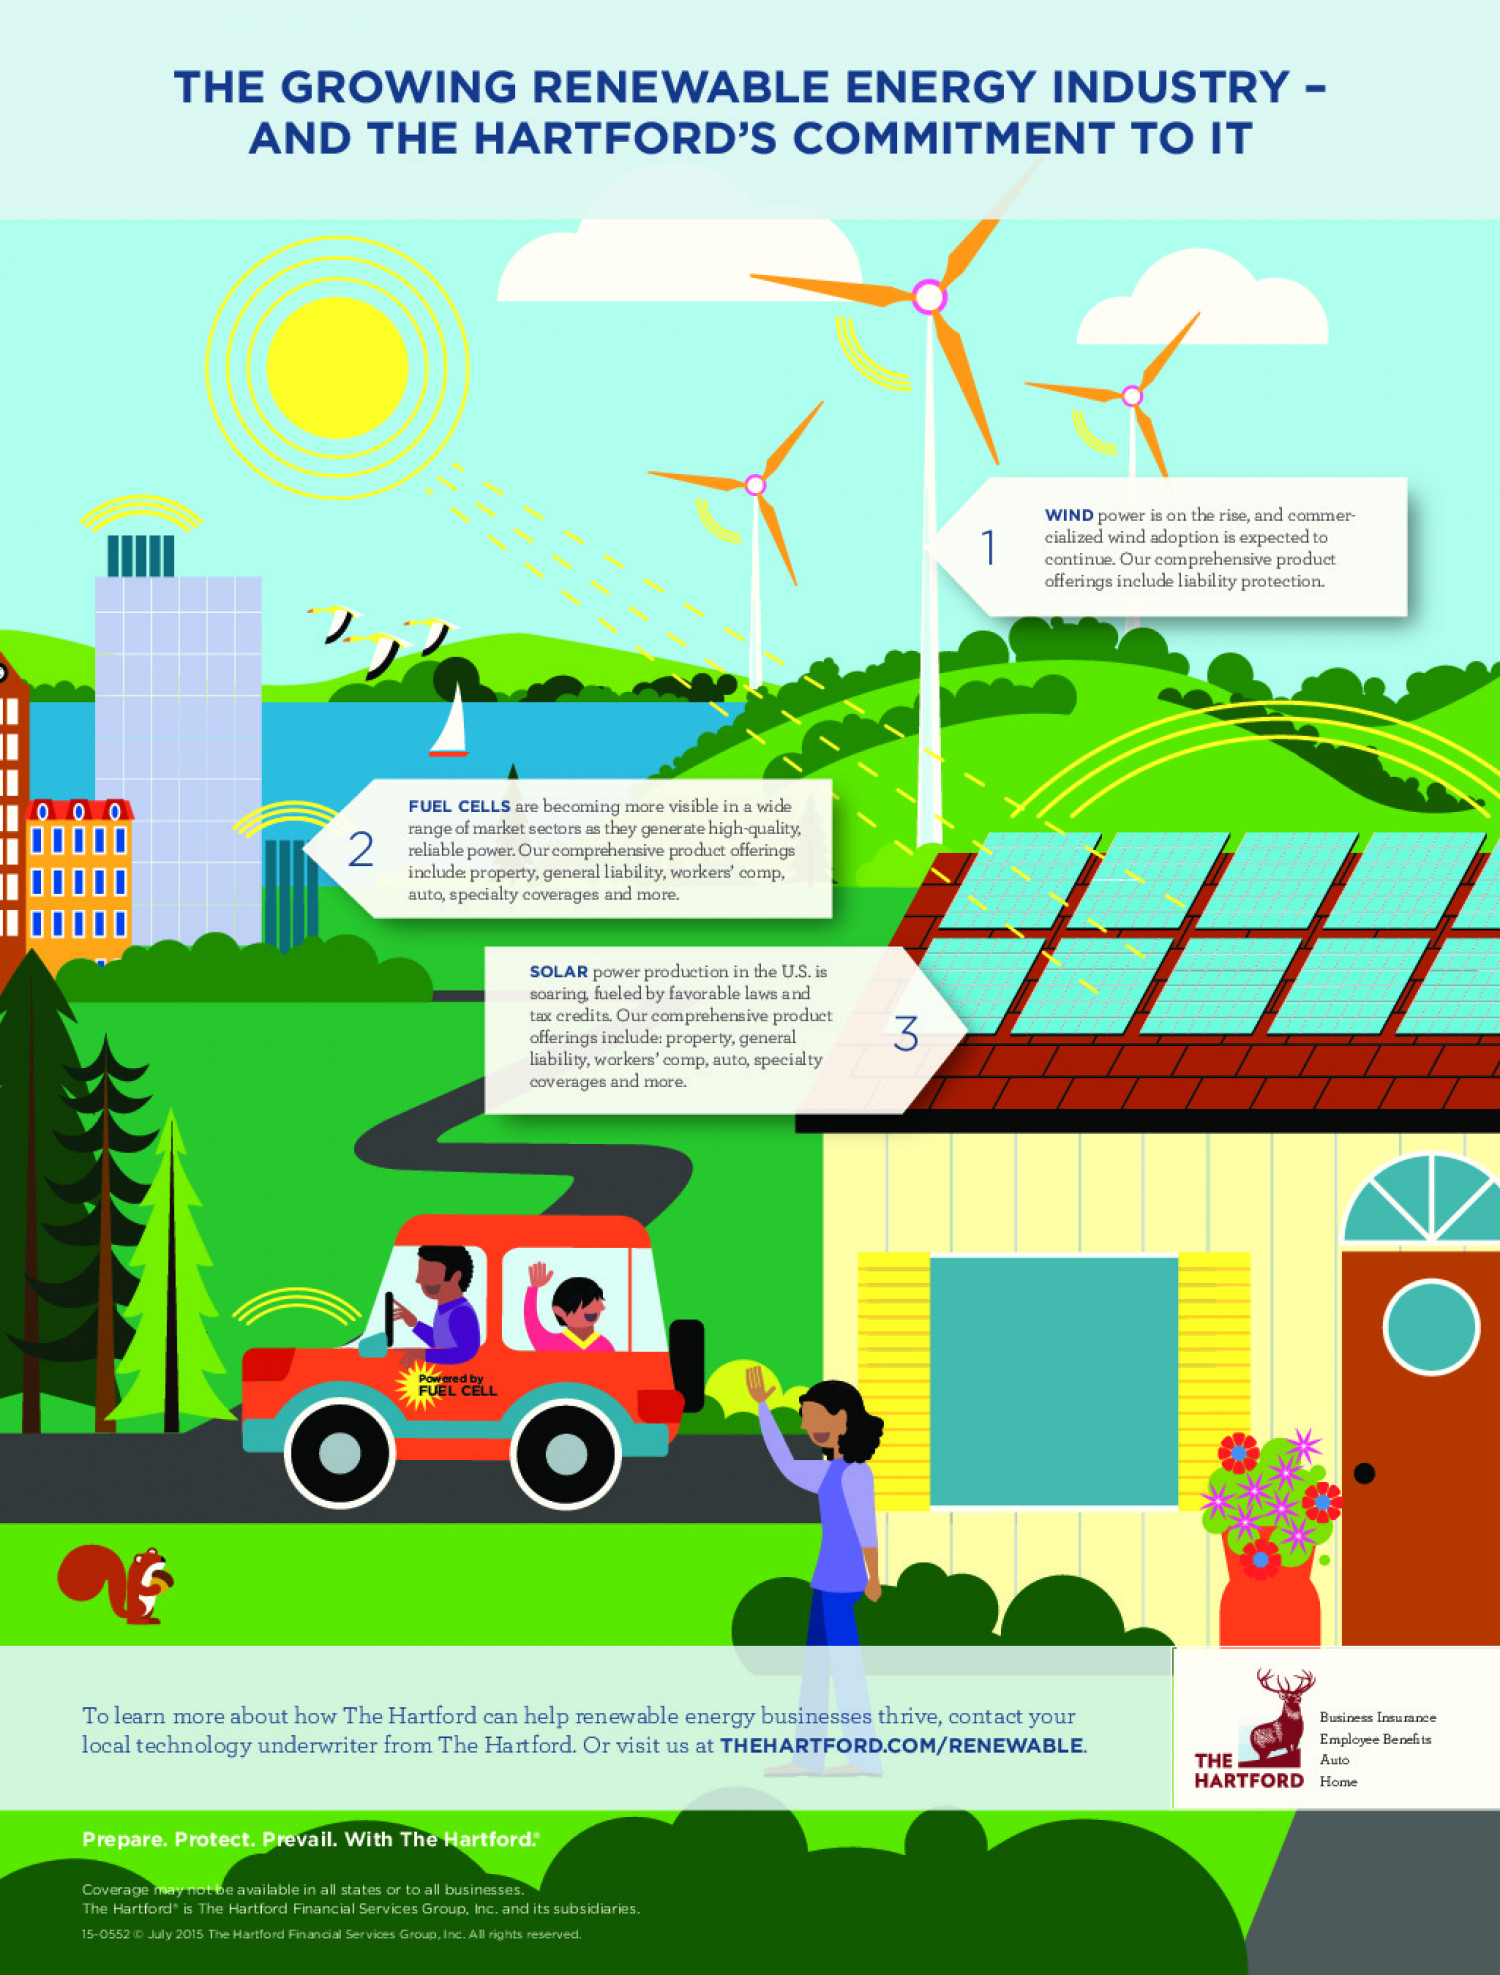 The Growing Renewable Energy Industry – and The Hartford's Commitment to it Infographic